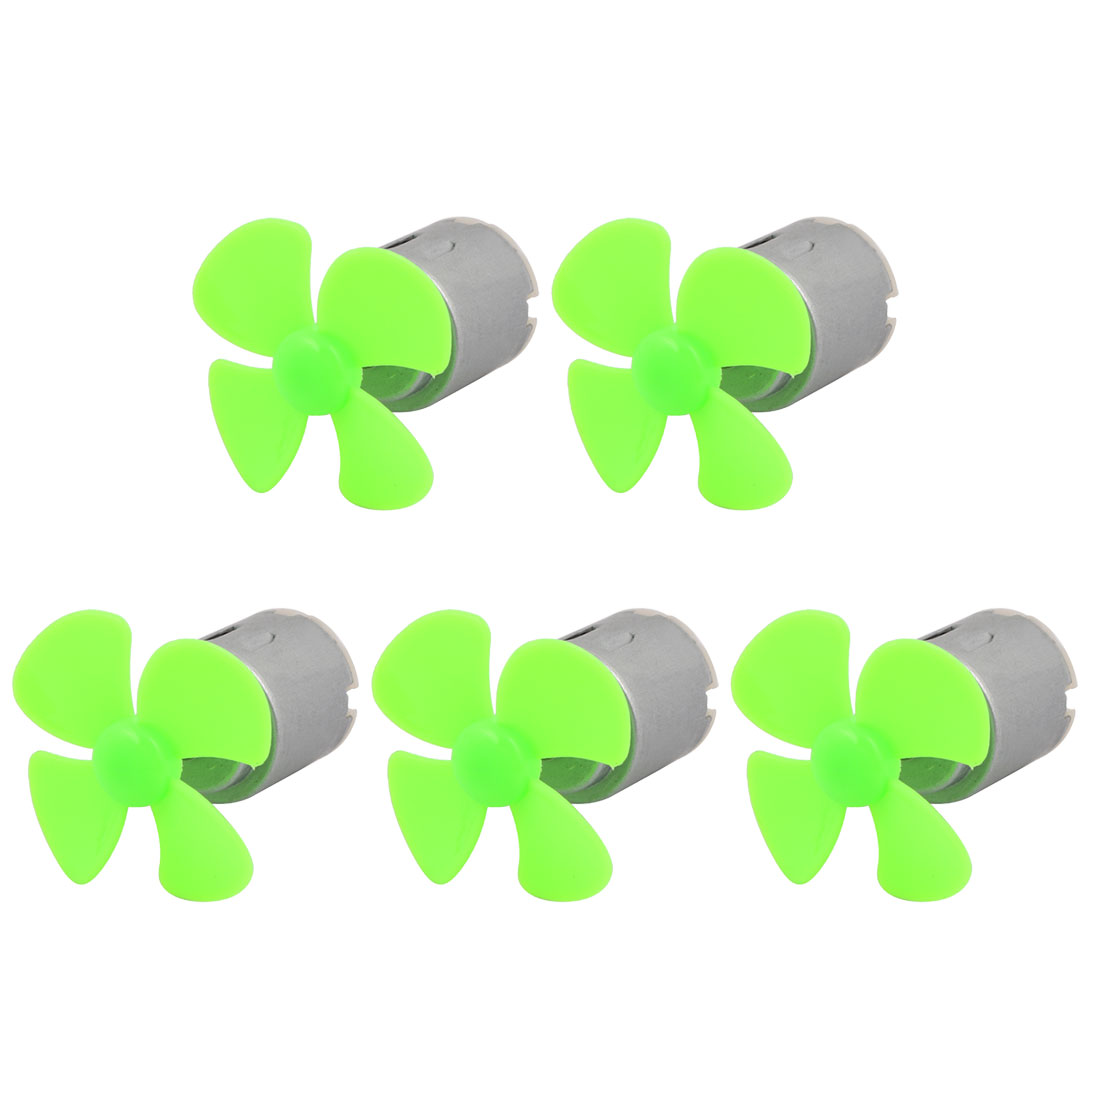 5Pcs DC 5V 12000RPM Large Torque Motor 4-Vane 40mm Dia Propeller Green for RC Model